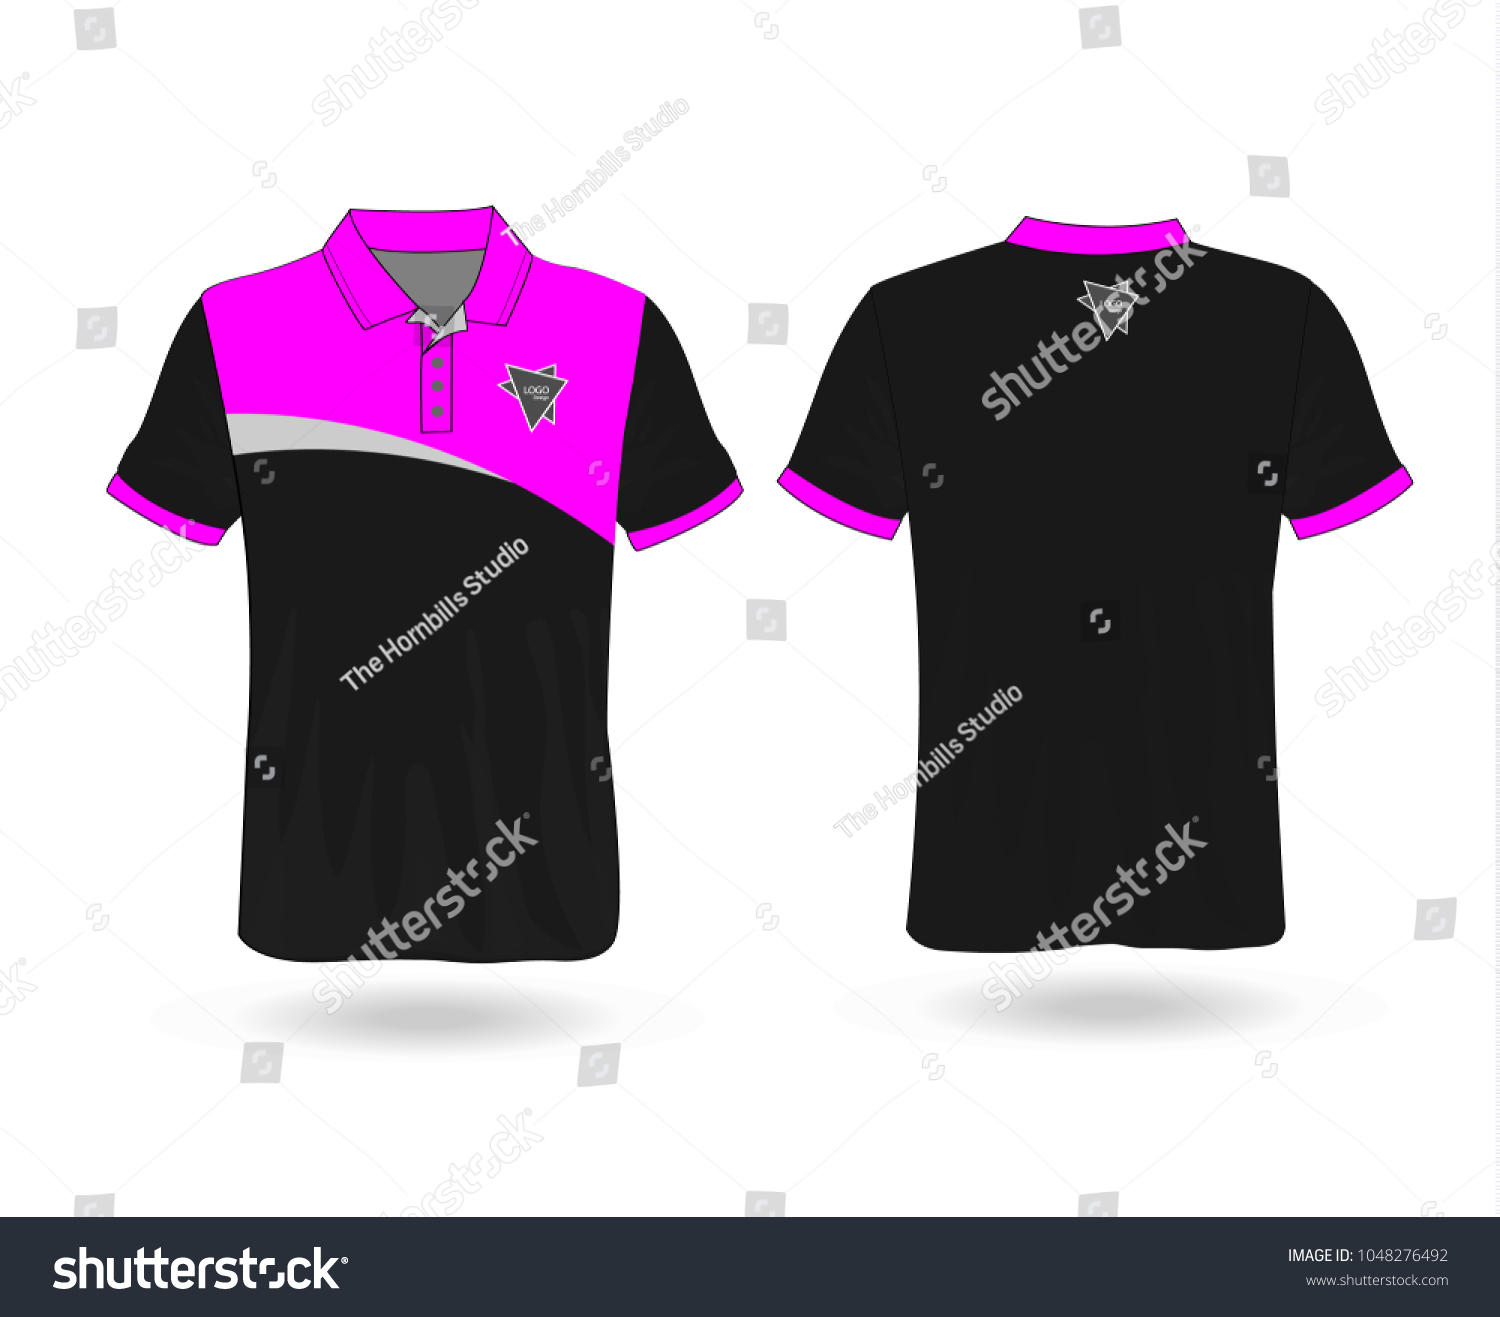 d25f2322 T-shirt Polo design sport with Pink stripe and logo Template for design on  white background. Vector illustration eps 10.